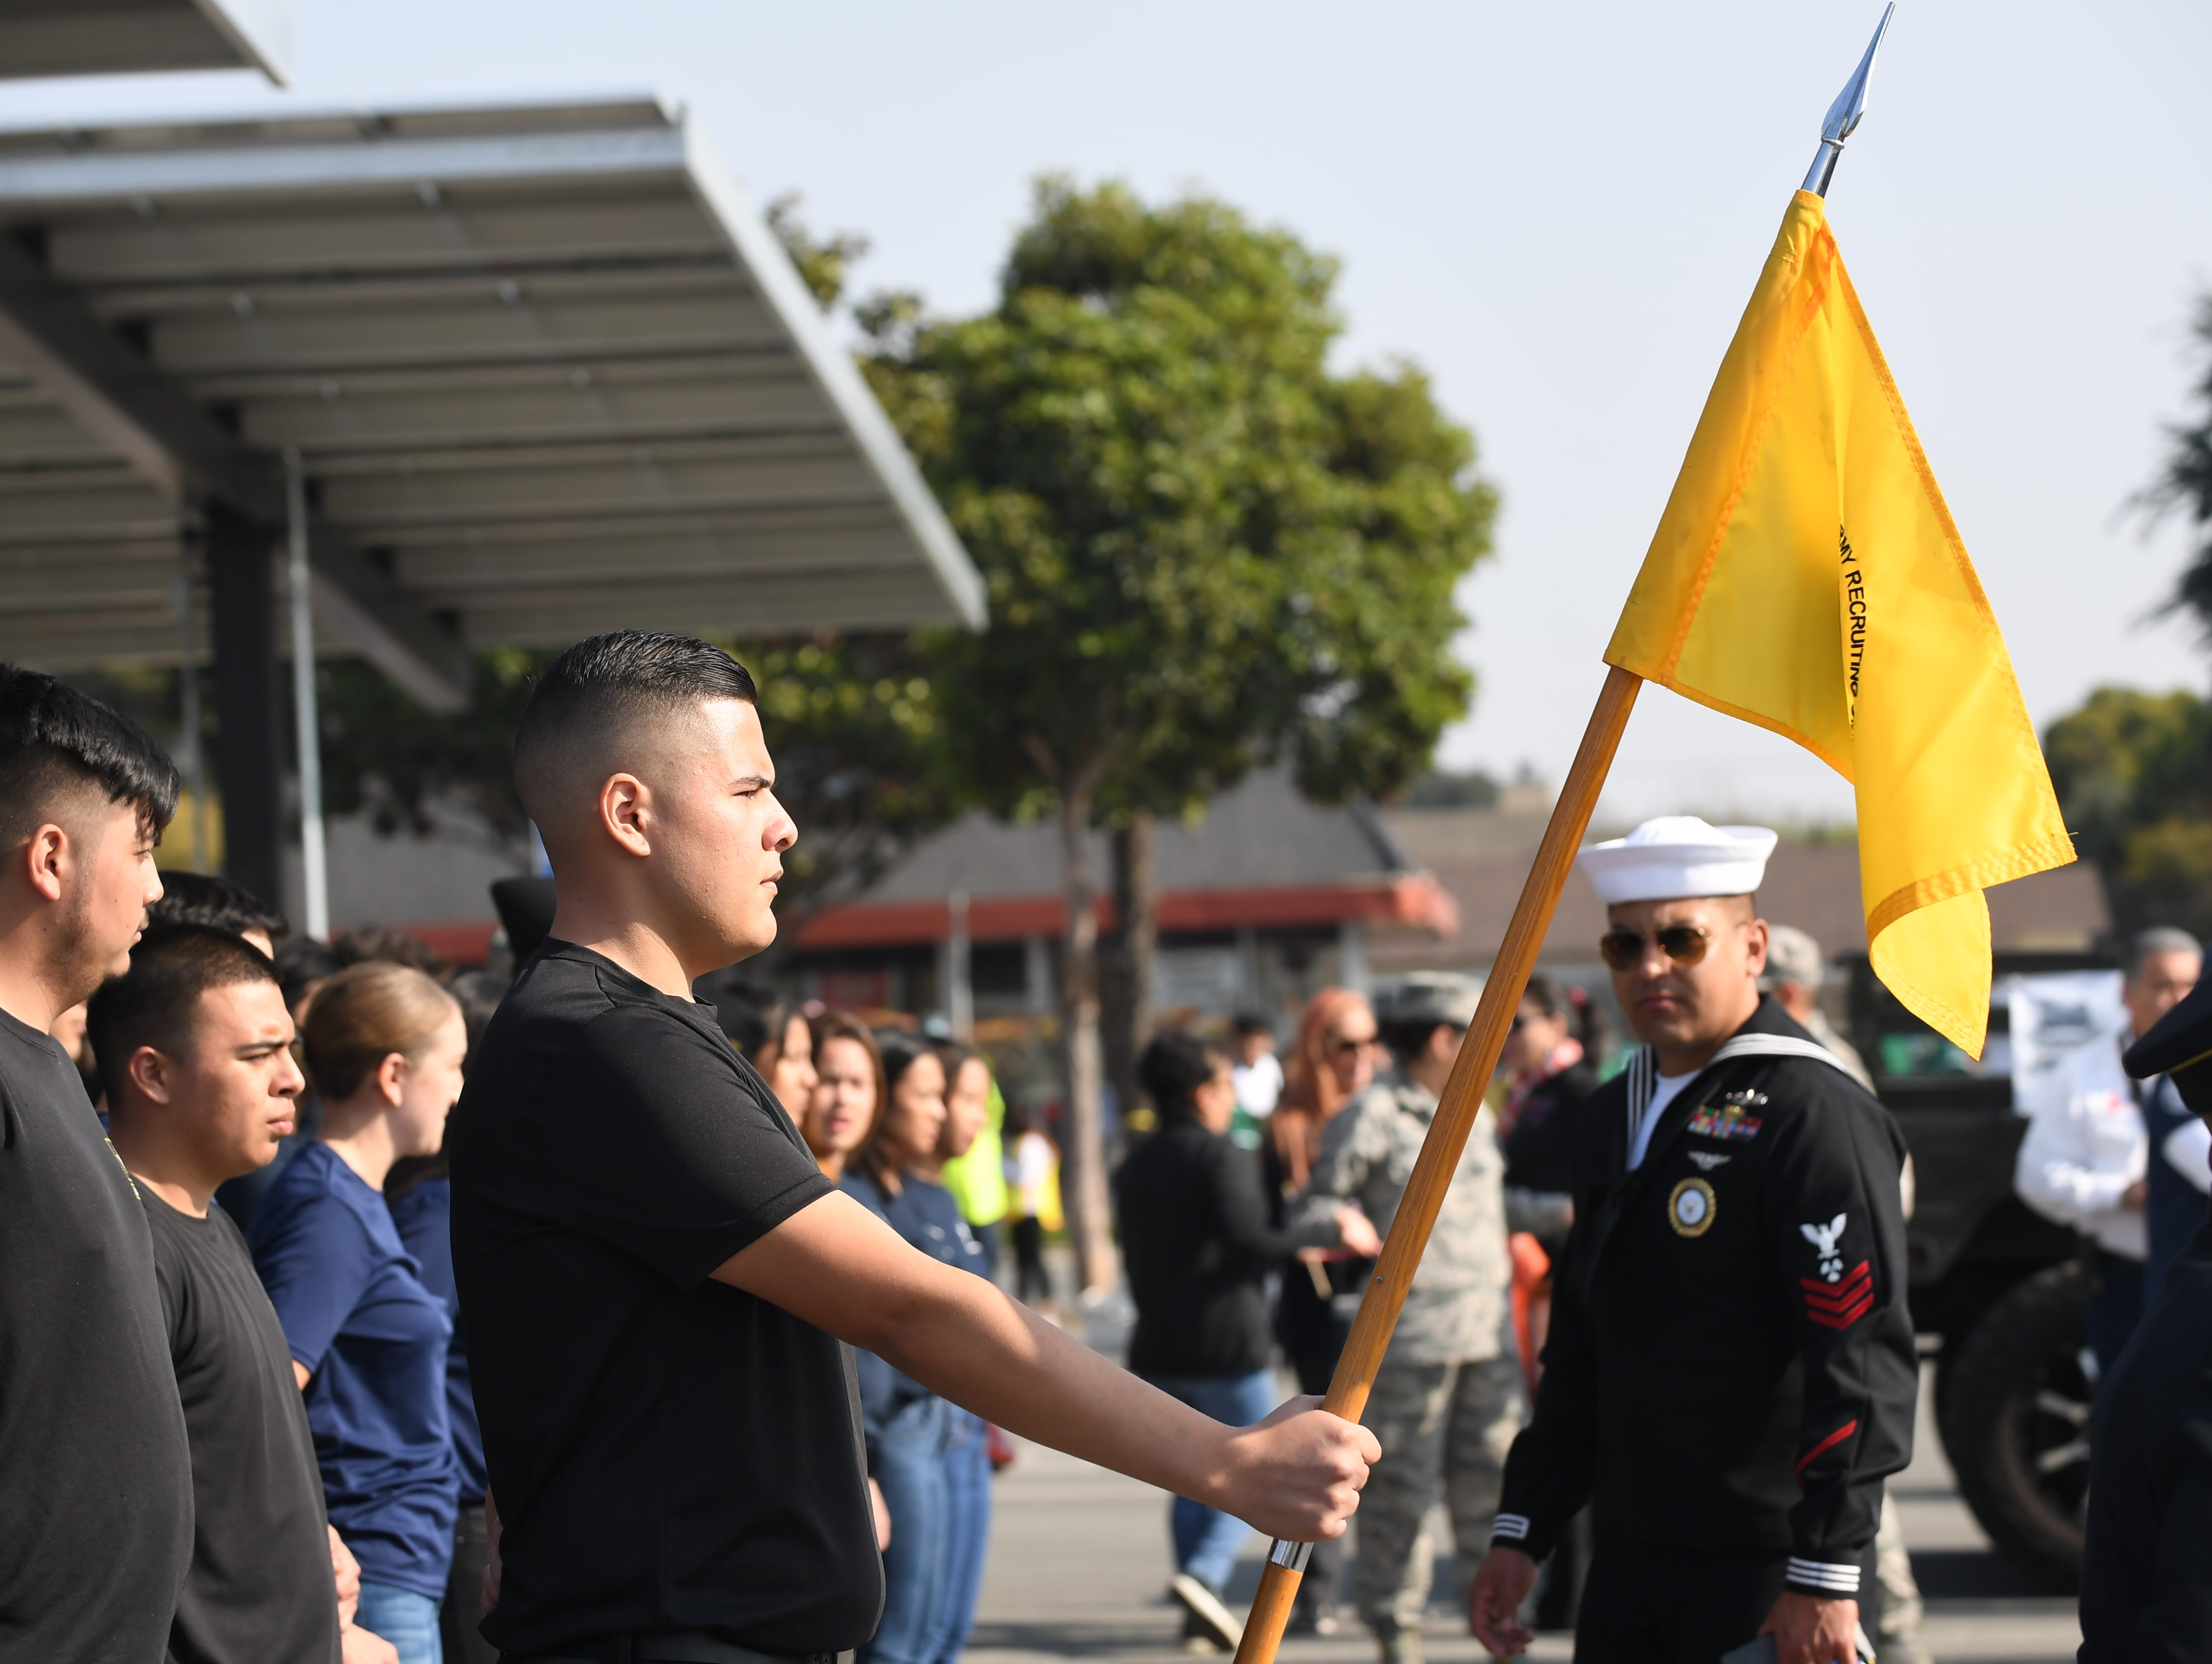 During Sunday's Monterey County Veterans Day Parade, local residents beginning their military careers took part in a mass oath of enlistment surrounded by friends and family.